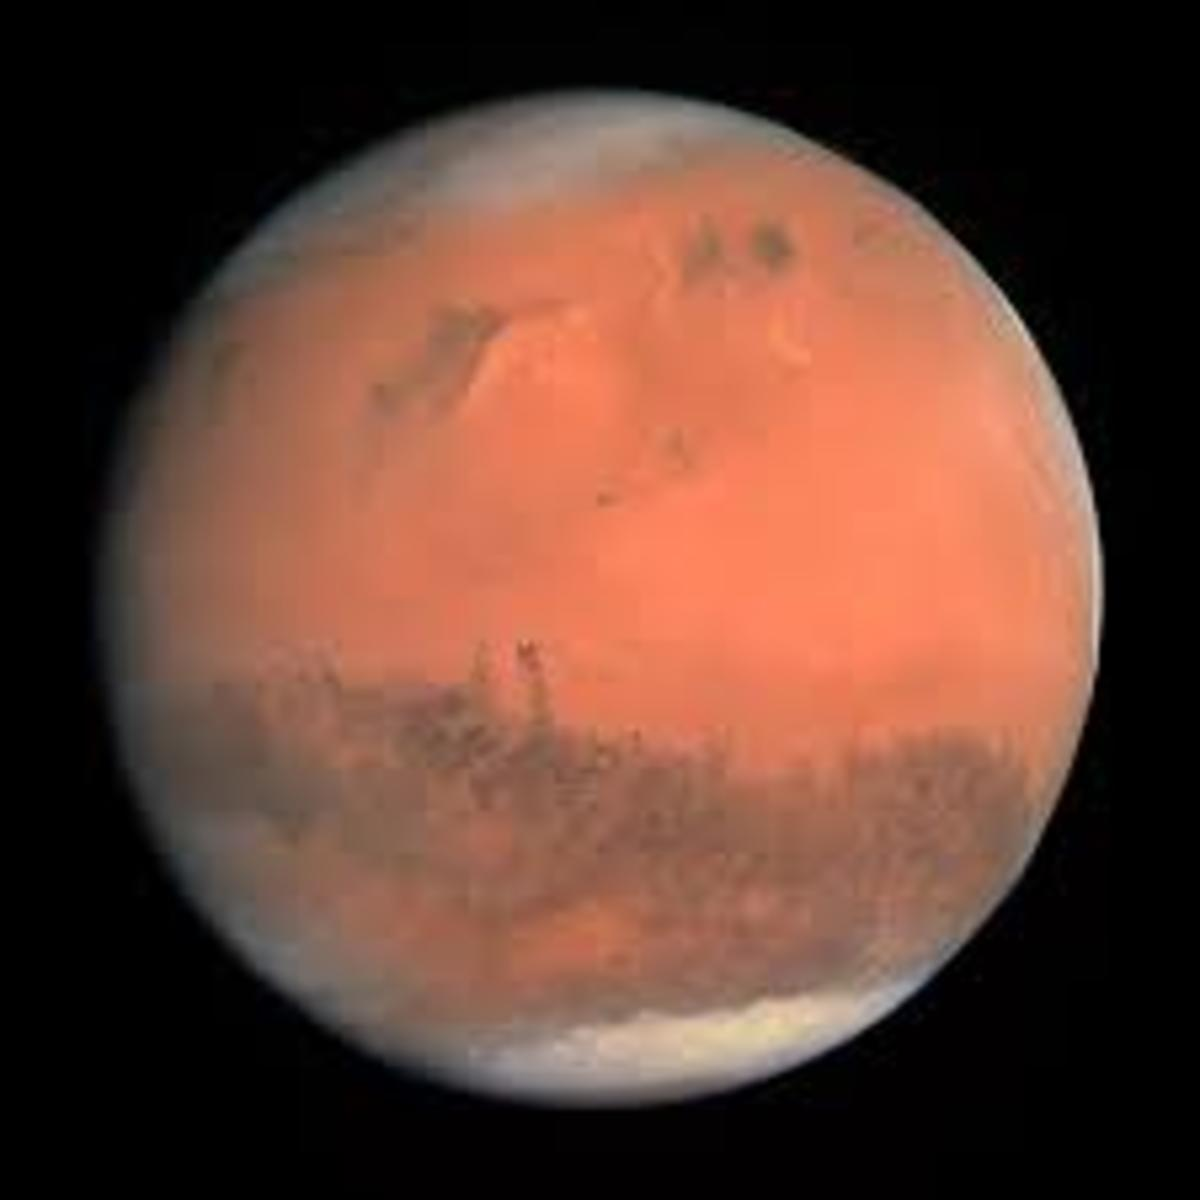 oxygen-on-mars-nasa-has-achieved-great-success